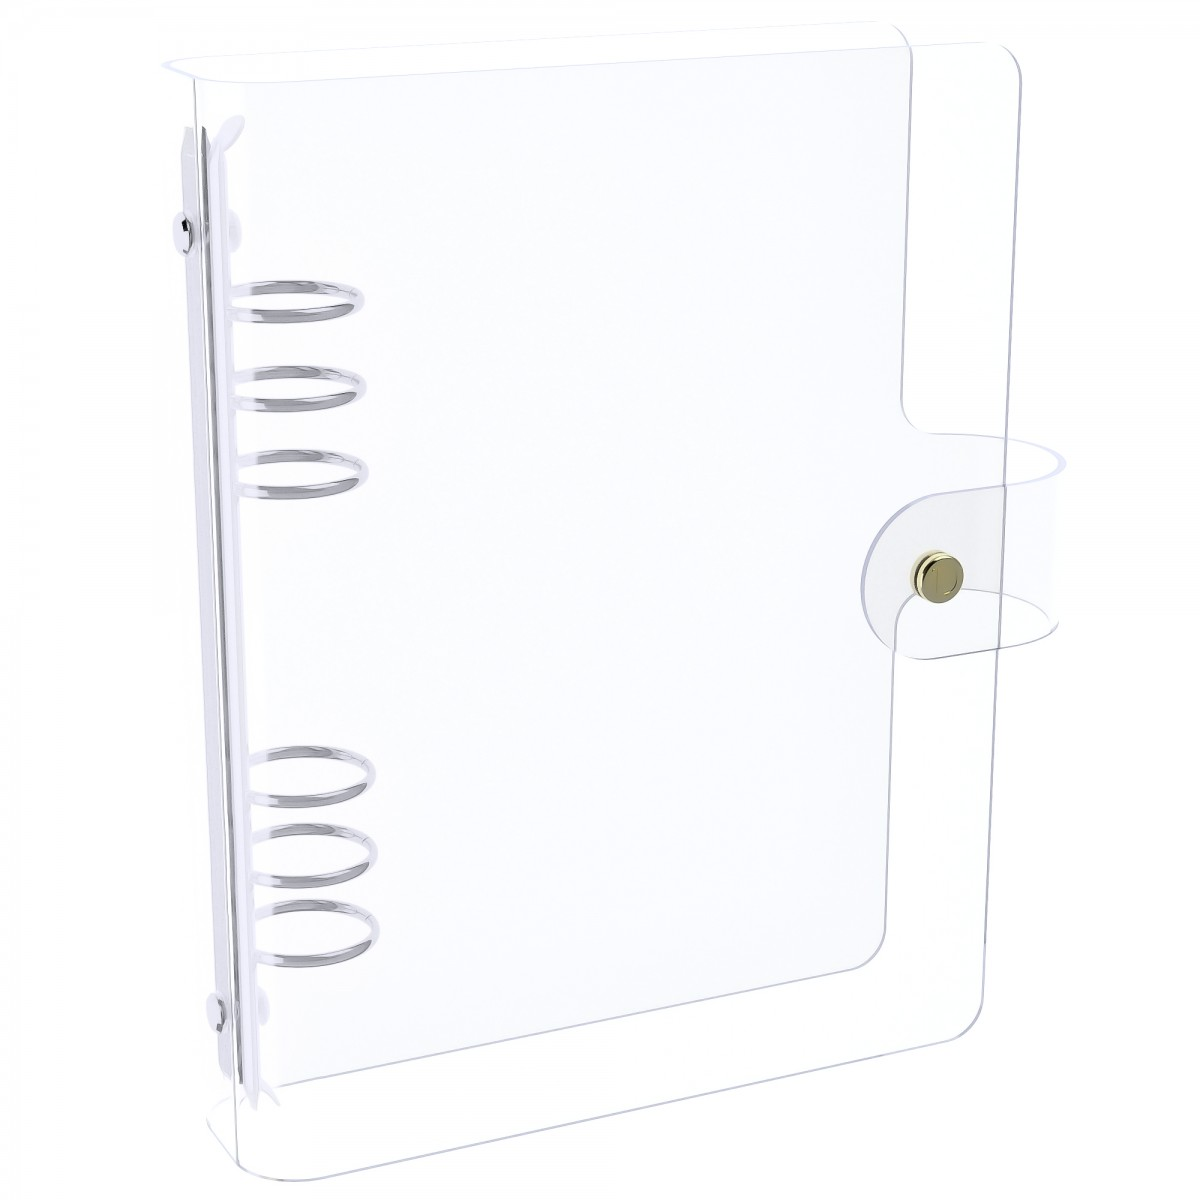 DISCAGENDA CLARITY CLEAR SEE THROUGH PVC PLANNER COVER - RINGBOUND, A5 SIZE, SILVER